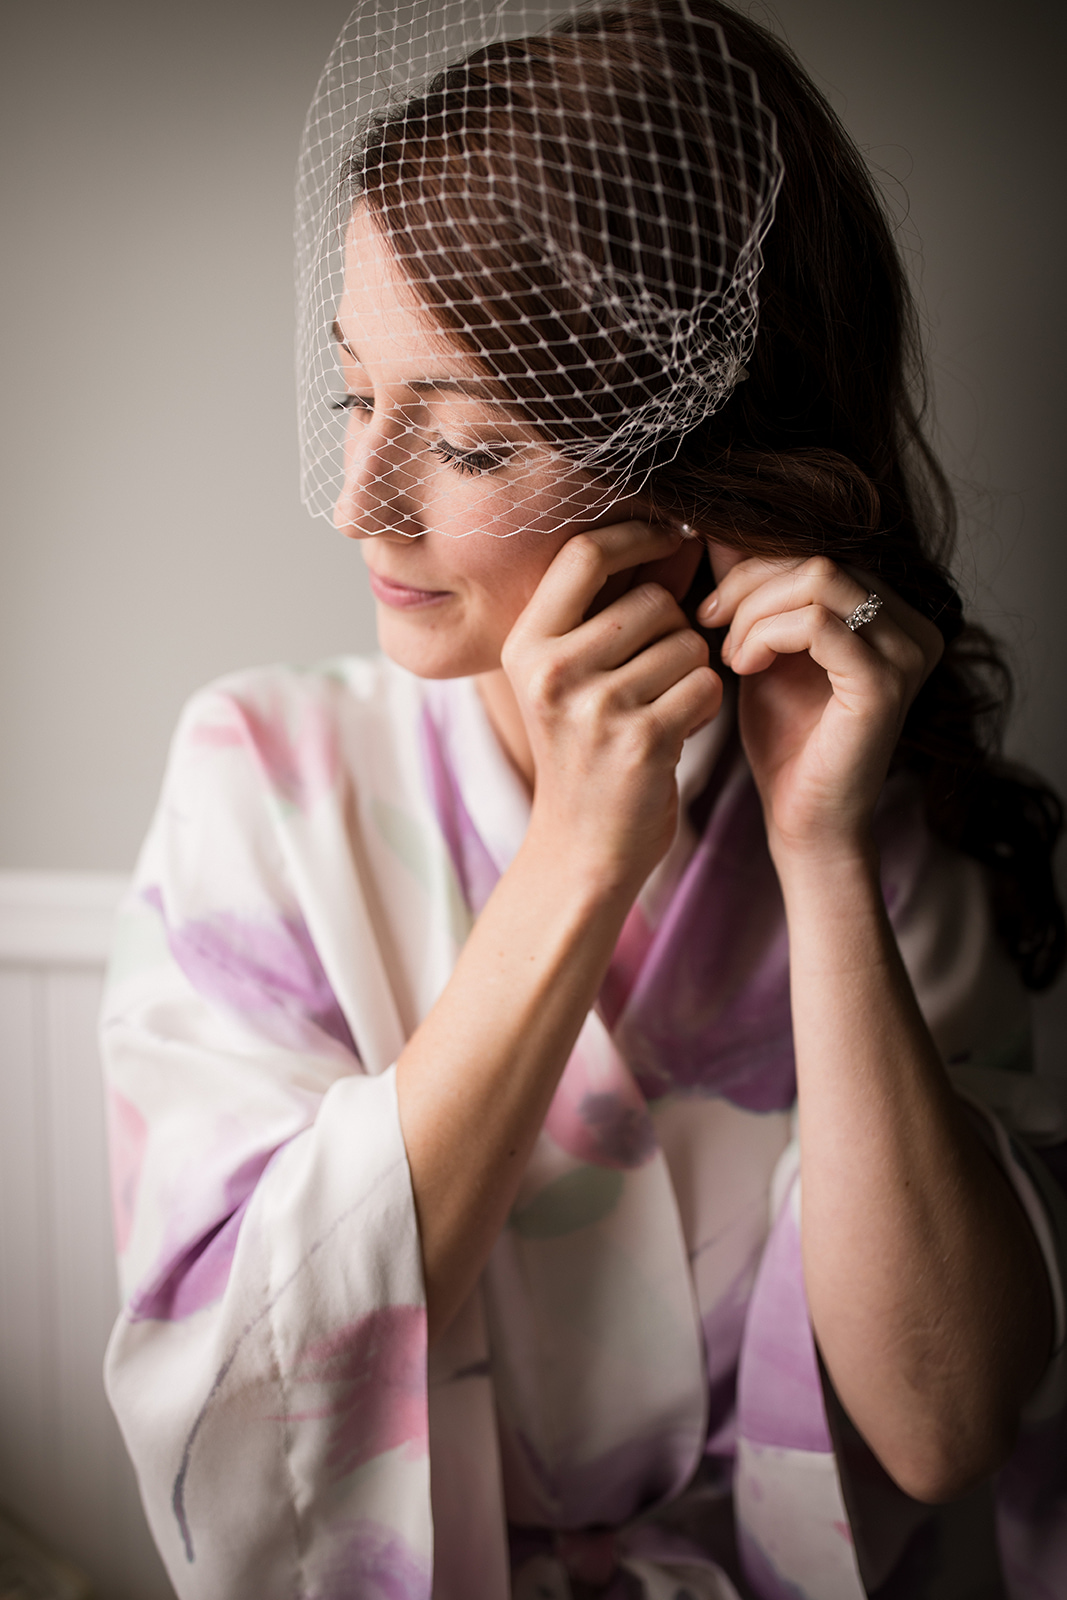 Wedding hair and make-up for the bride in her birdcage veil for her school-themed, vintage glam Pittsburgh wedding at Ace Hotel. See more fun details at exhale-events.com!